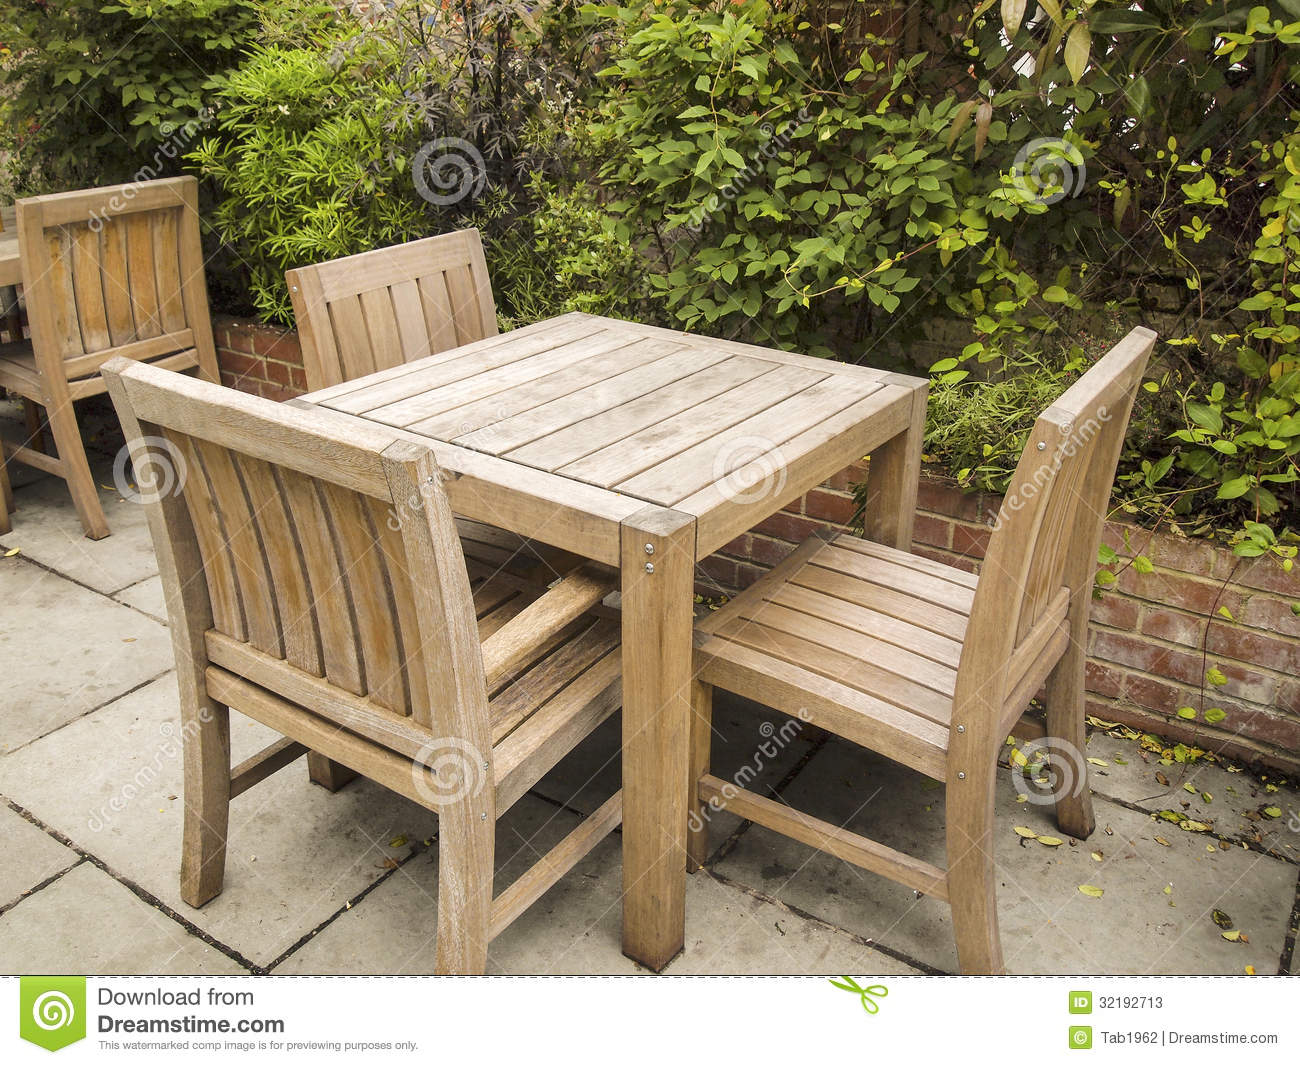 Photo of old wooden table and chairs outdoors with brick barrier and ...